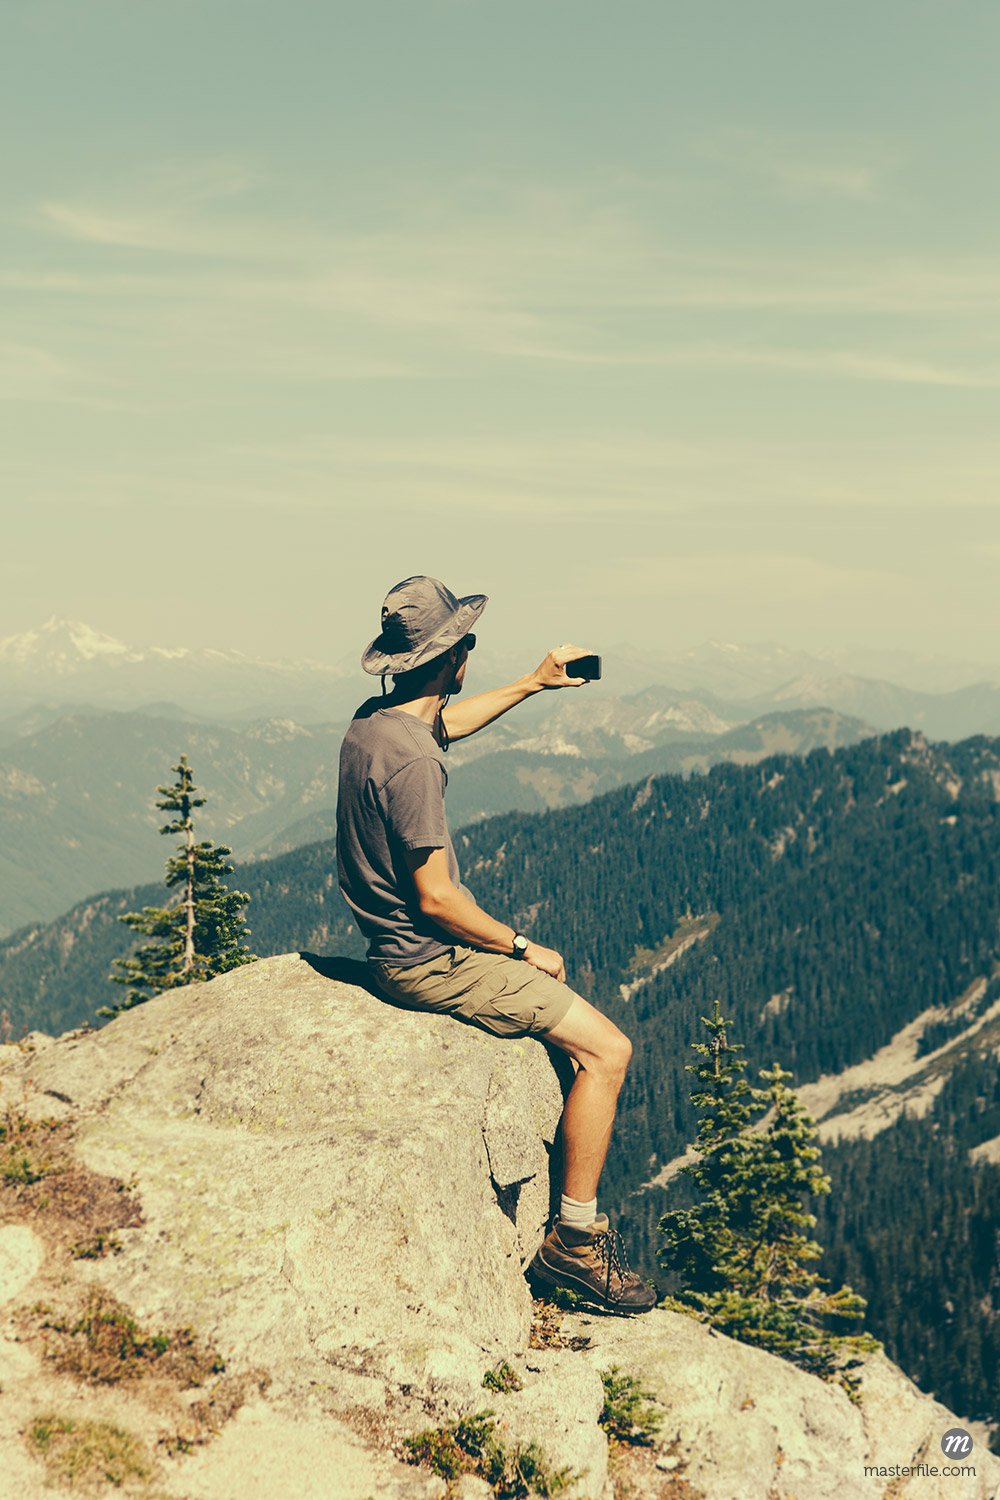 A hiker on a mountain summit, holding a smart phone © Masterfile